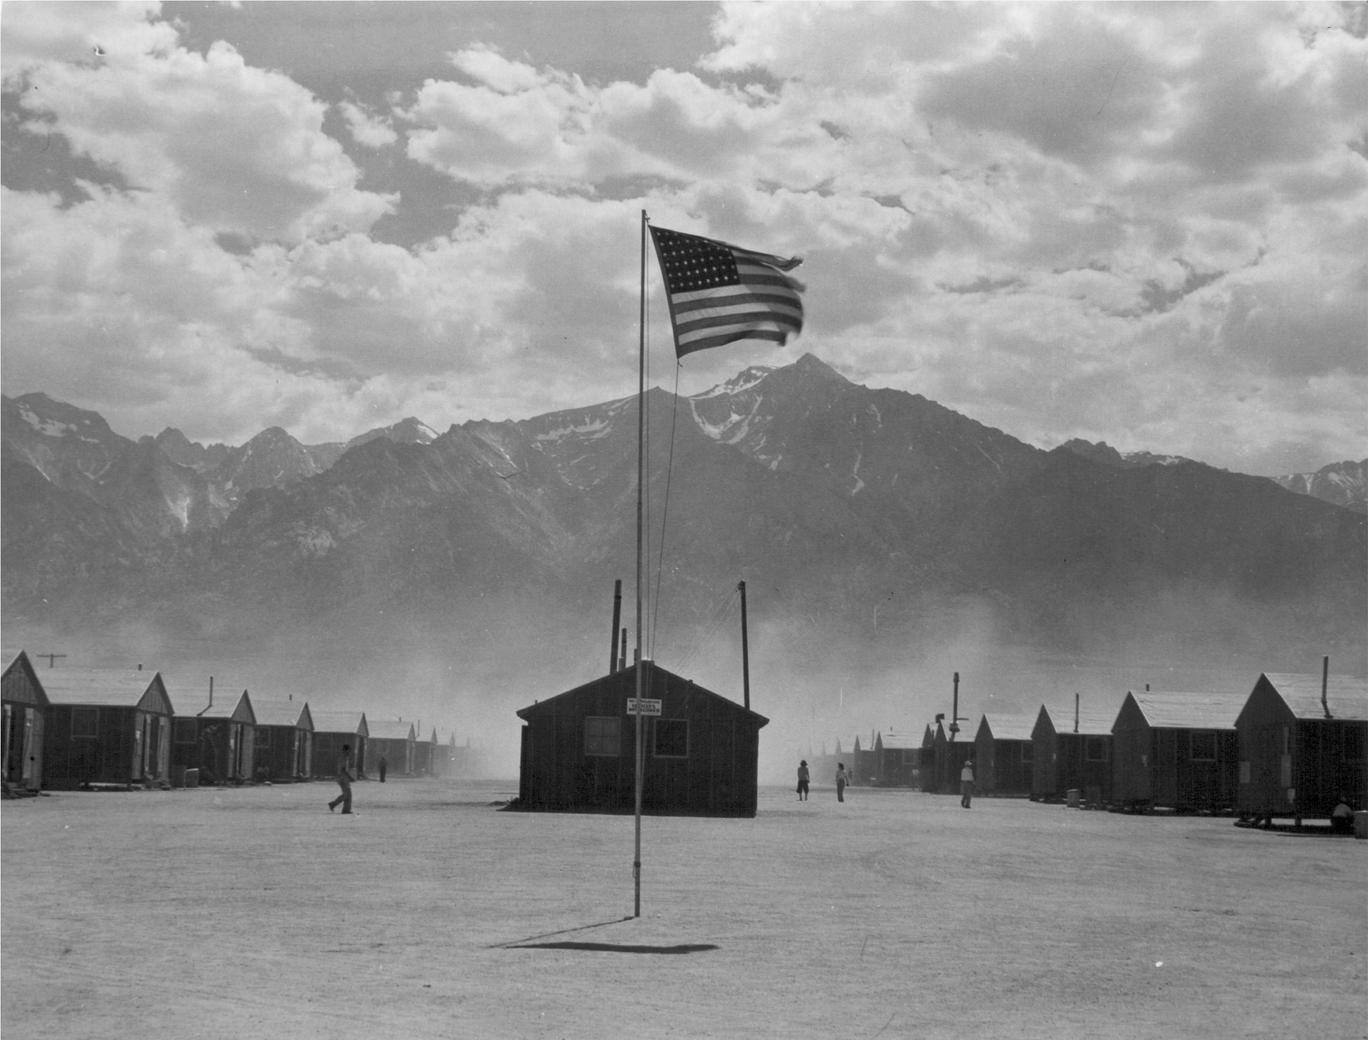 Photographer Dorothea Lange photographed the stark landscape of the Manzanar Internment Camp in California on July 3, 1942.